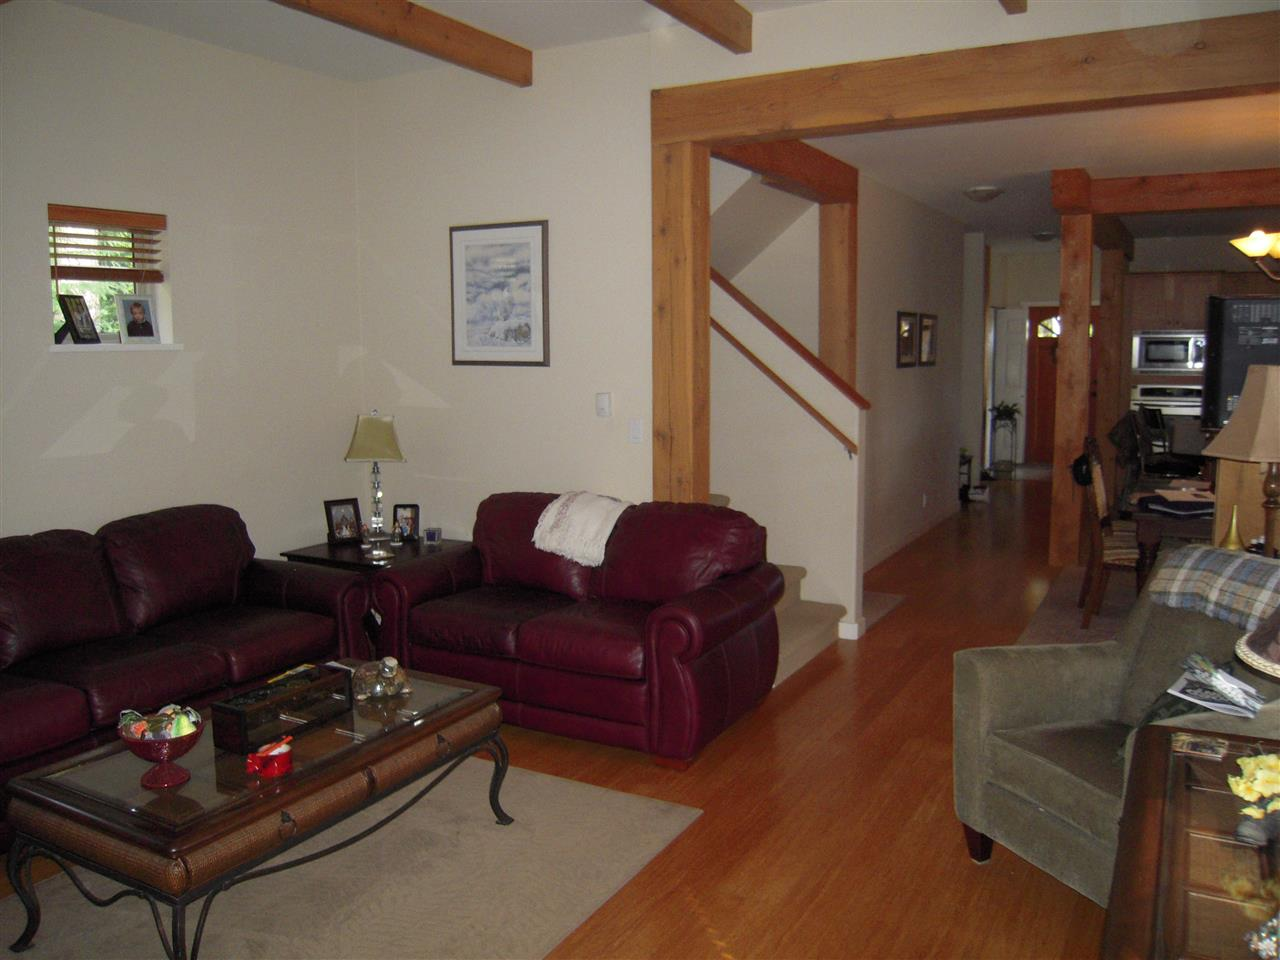 Photo 4: 5447 WAKEFIELD ROAD in Sechelt: Sechelt District House for sale (Sunshine Coast)  : MLS(r) # R2047962